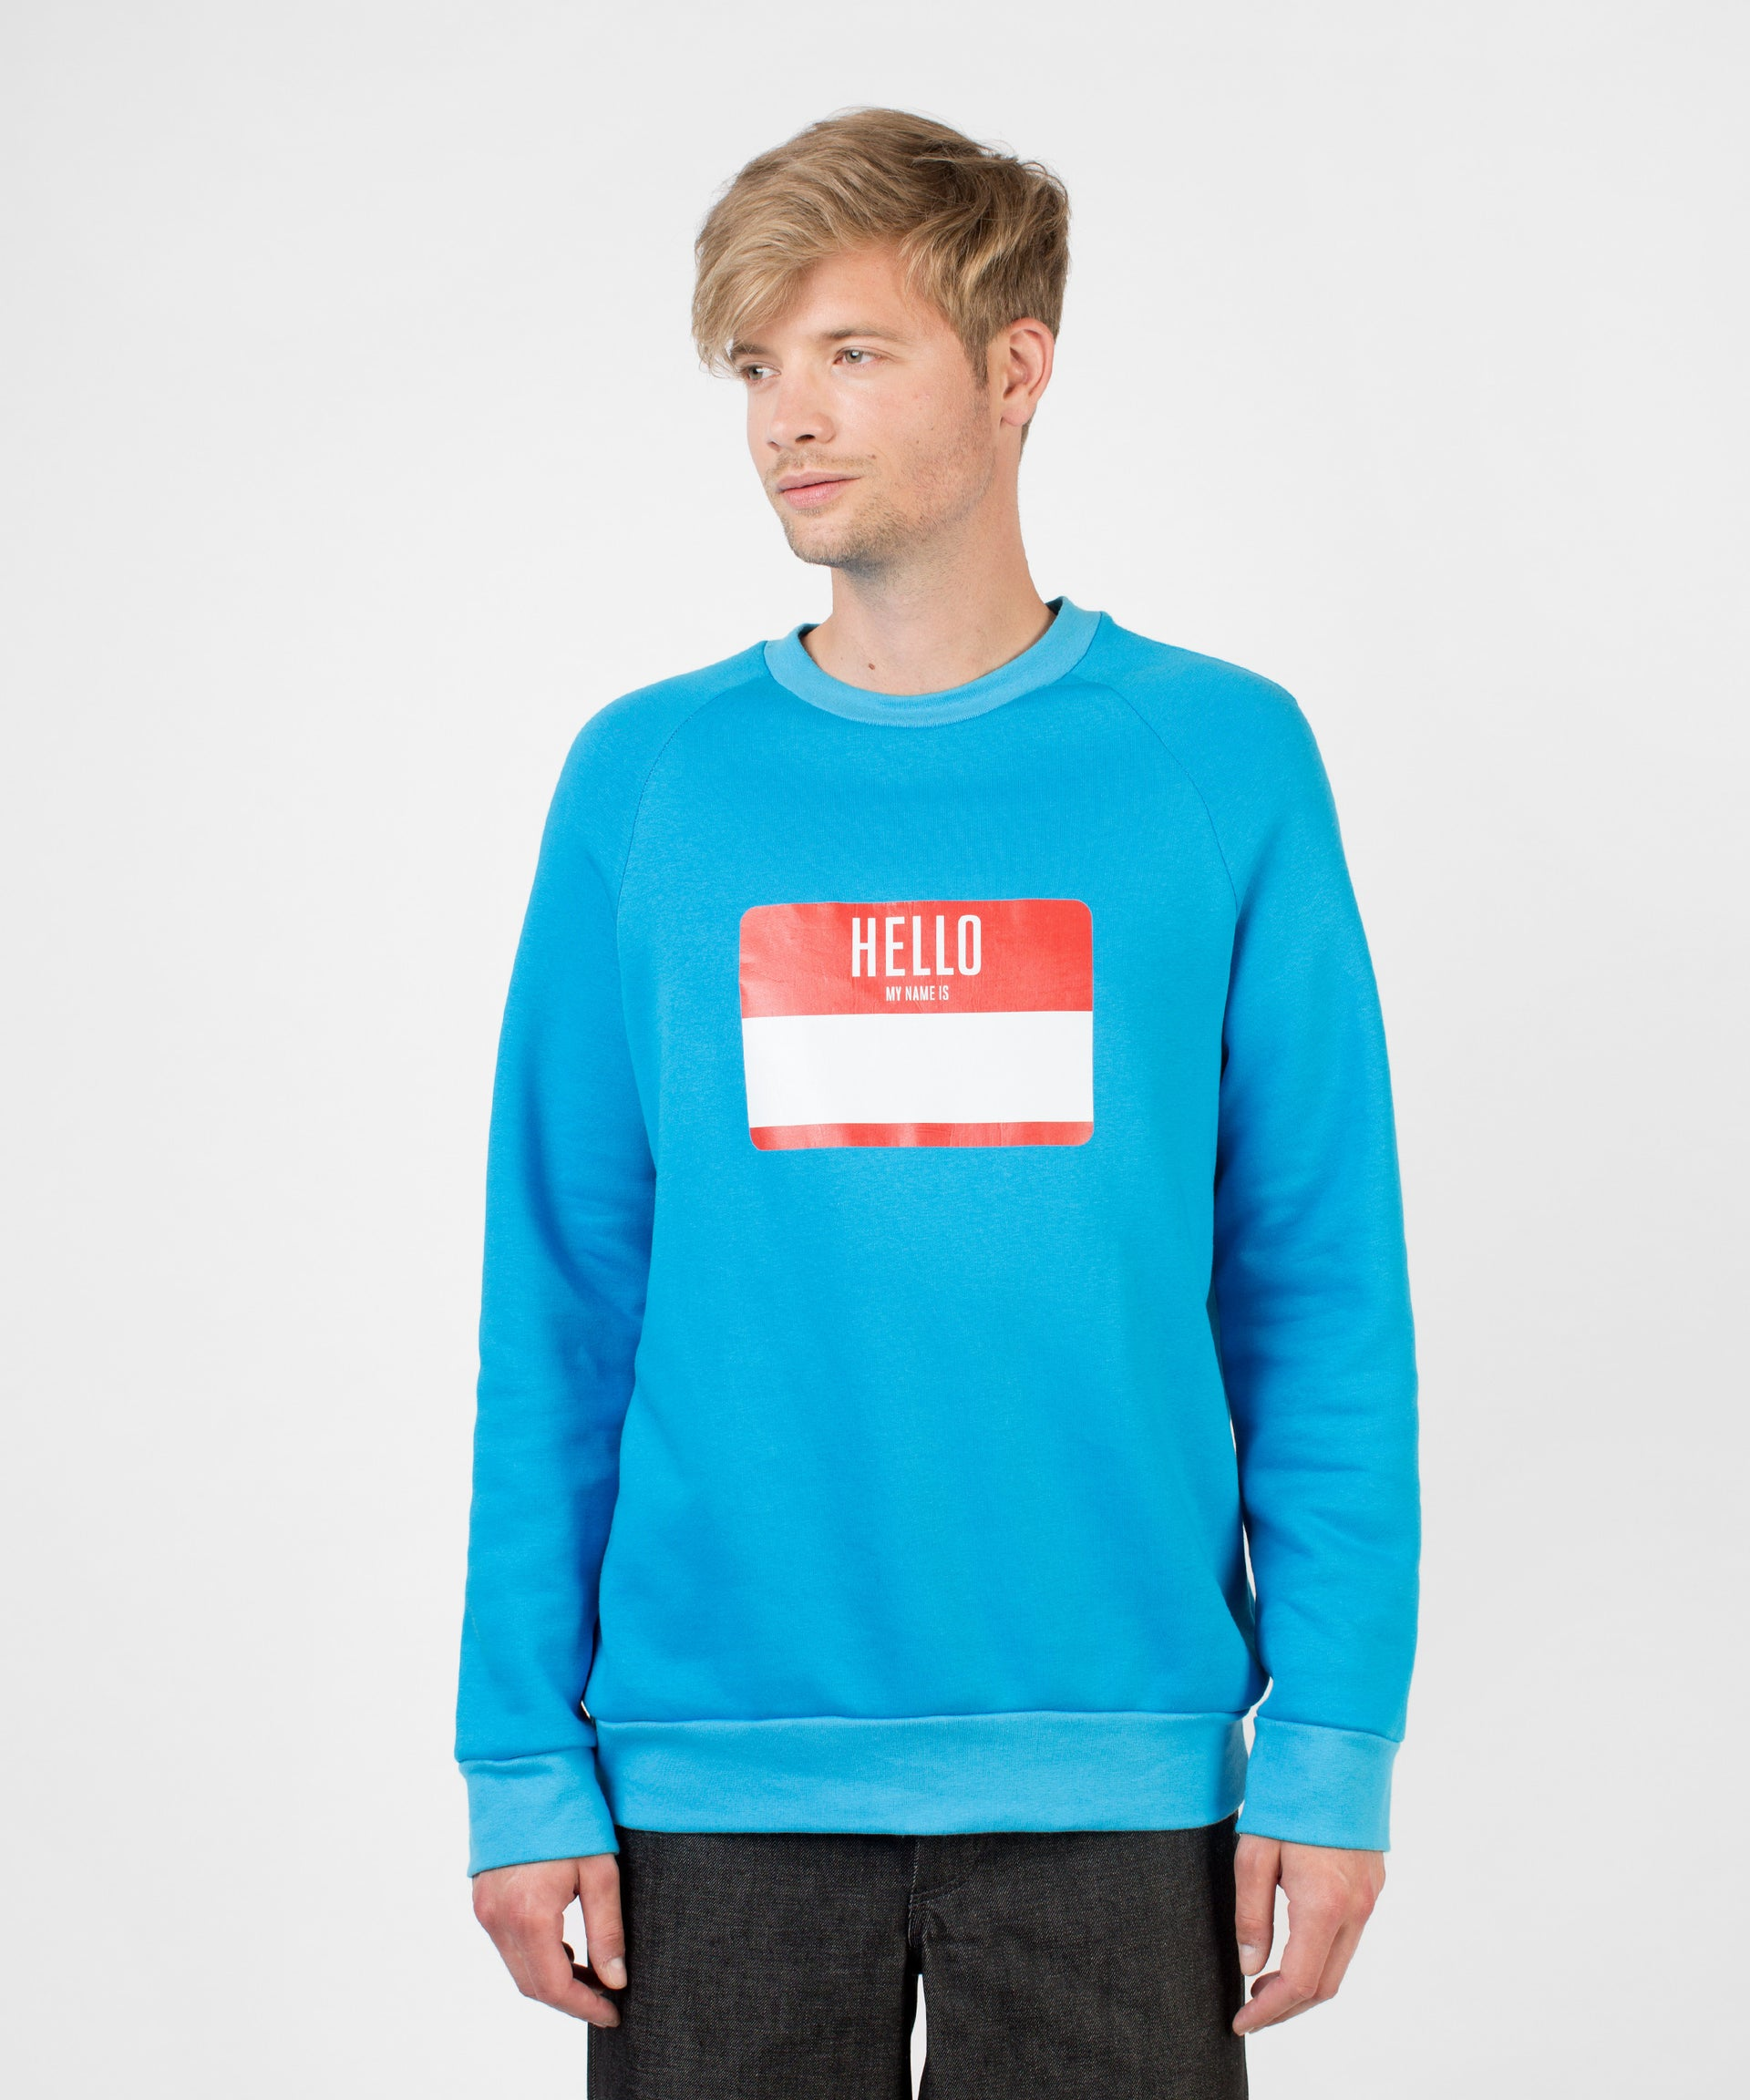 Halo M Sweater